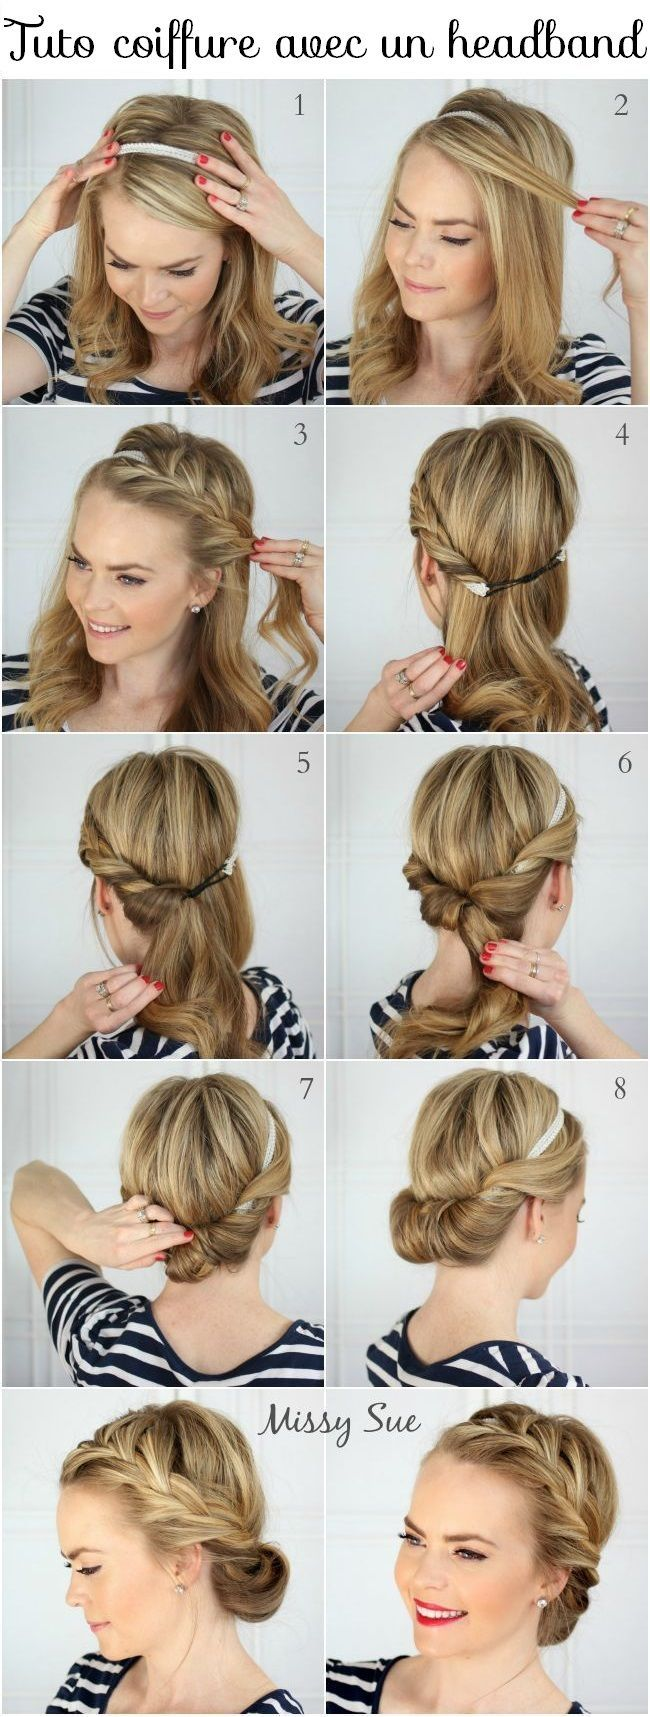 best hair ideas images on pinterest hairstyle ideas girls